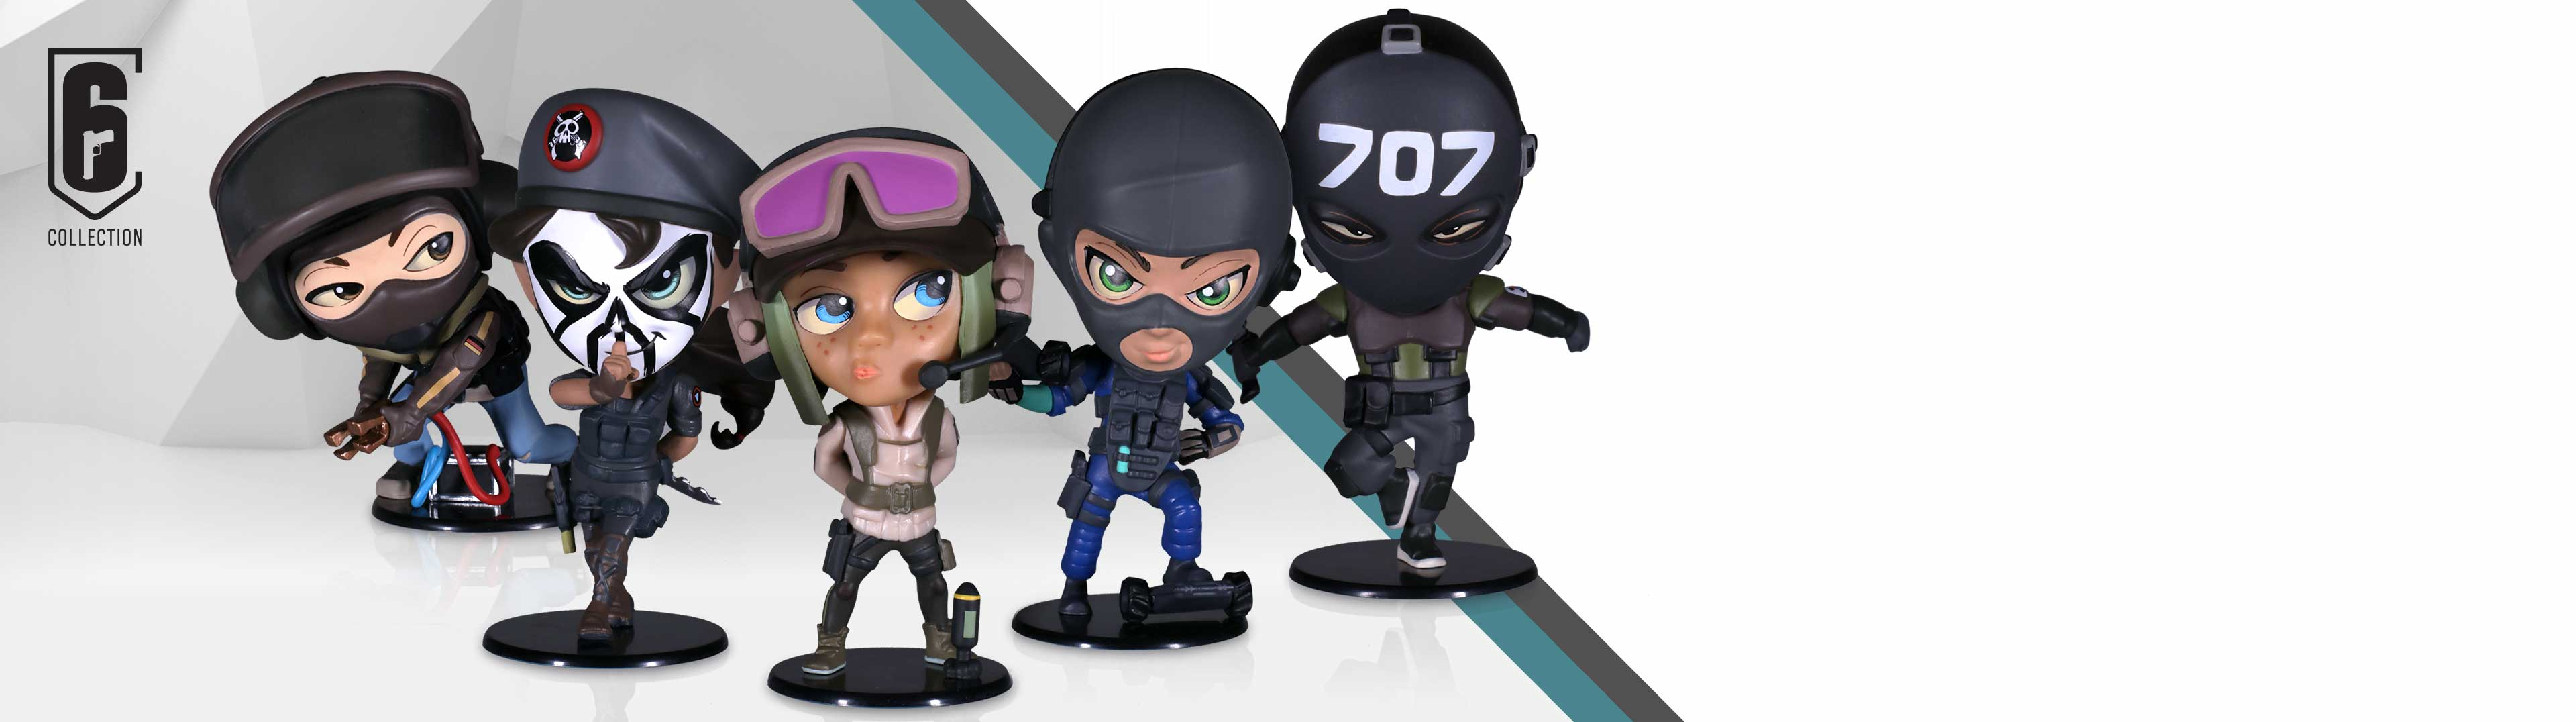 The Chibi figurines are back with 5 new operators!